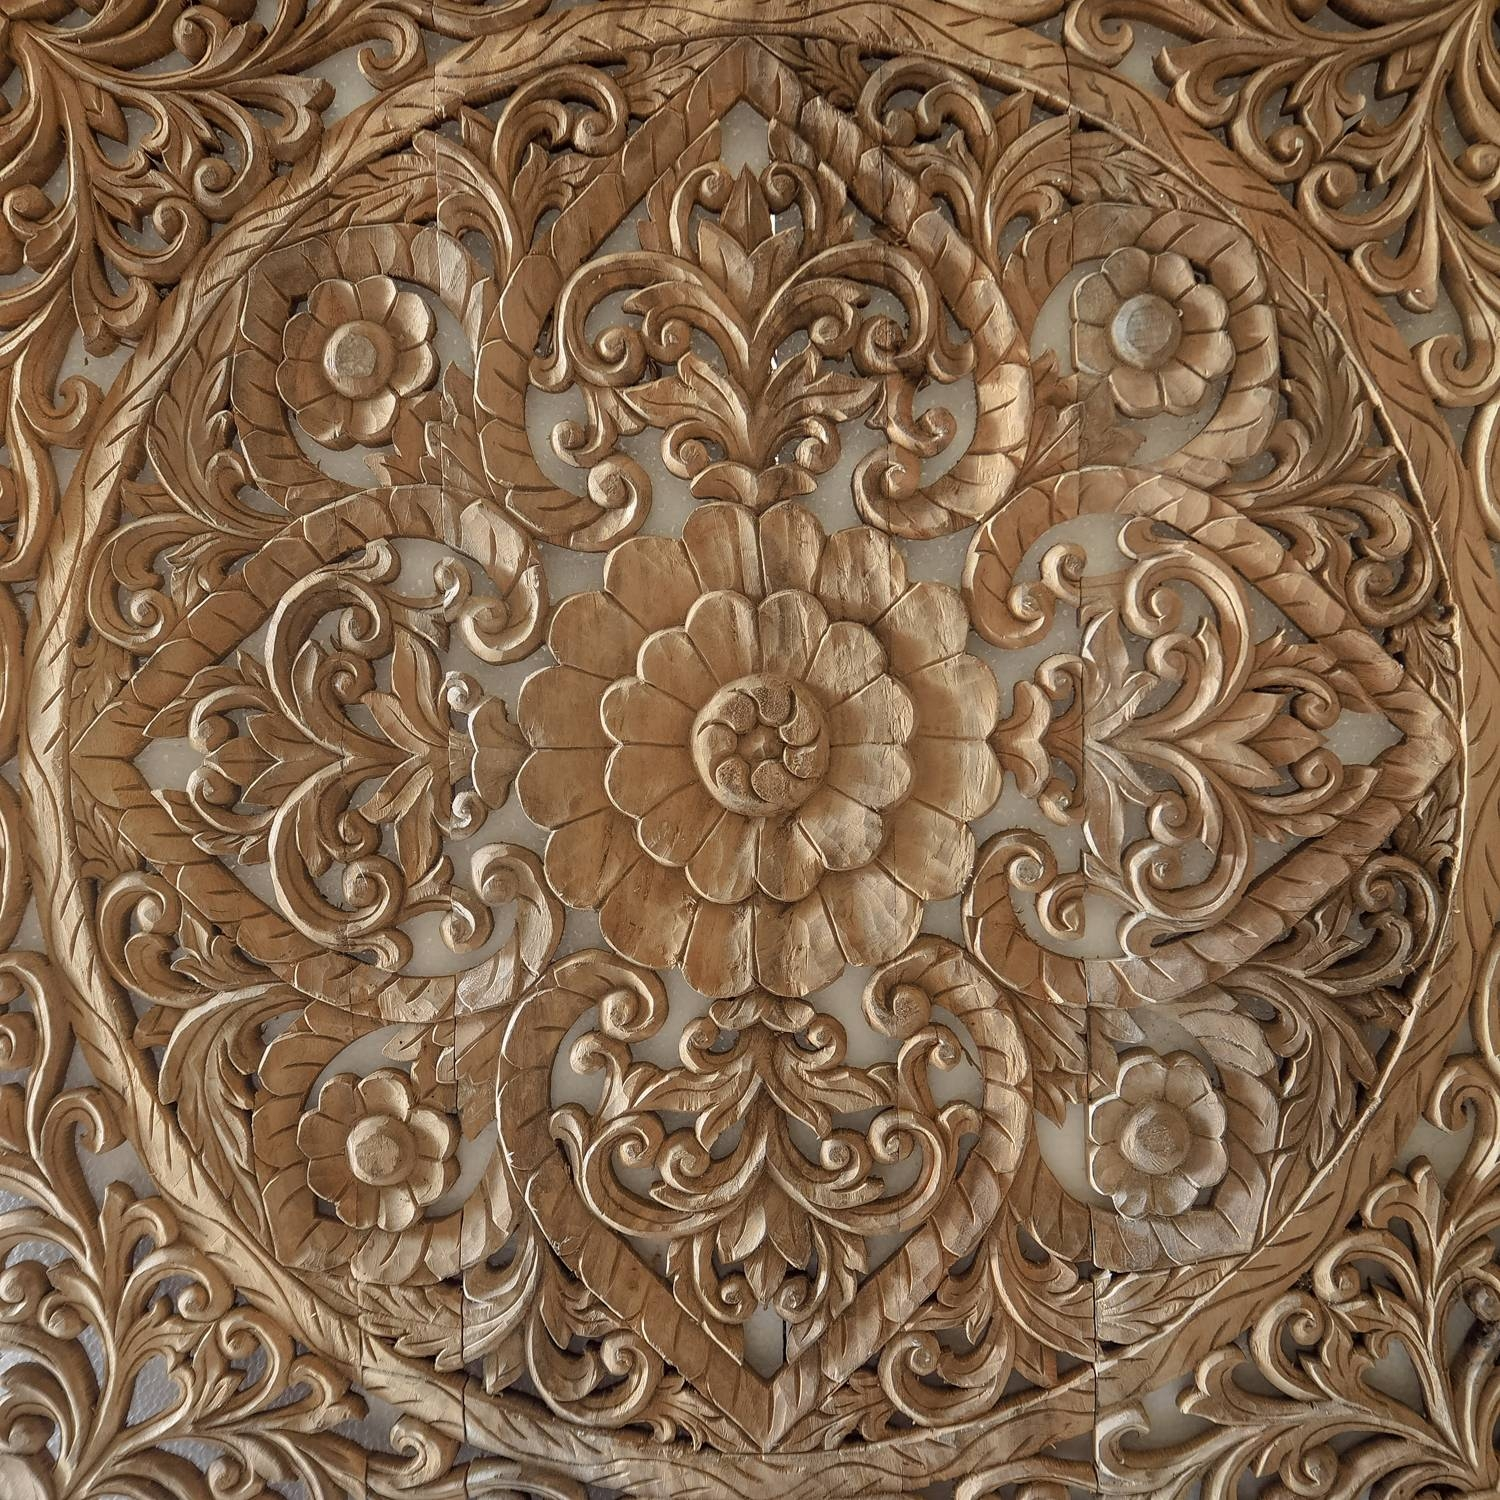 Hand Carved Wall Panel From Bali – Siam Sawadee Regarding Latest Wooden Wall Art Panels (View 13 of 20)